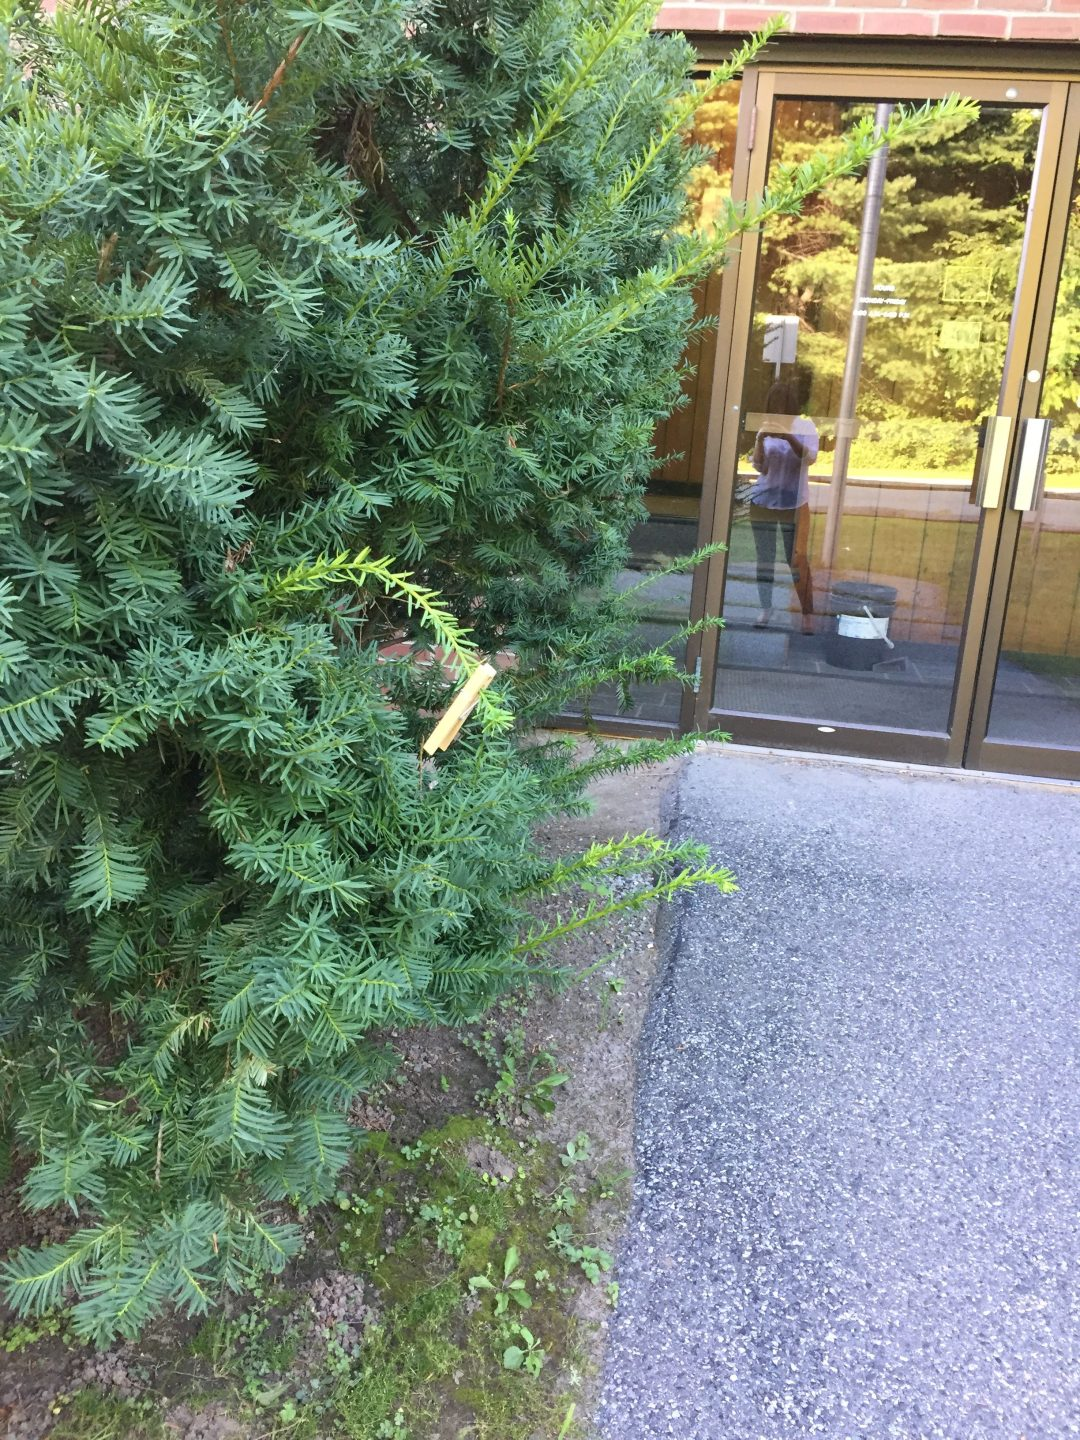 This clothespin has been pinned to this bush outside of the Valley News office for god knows how many days now.